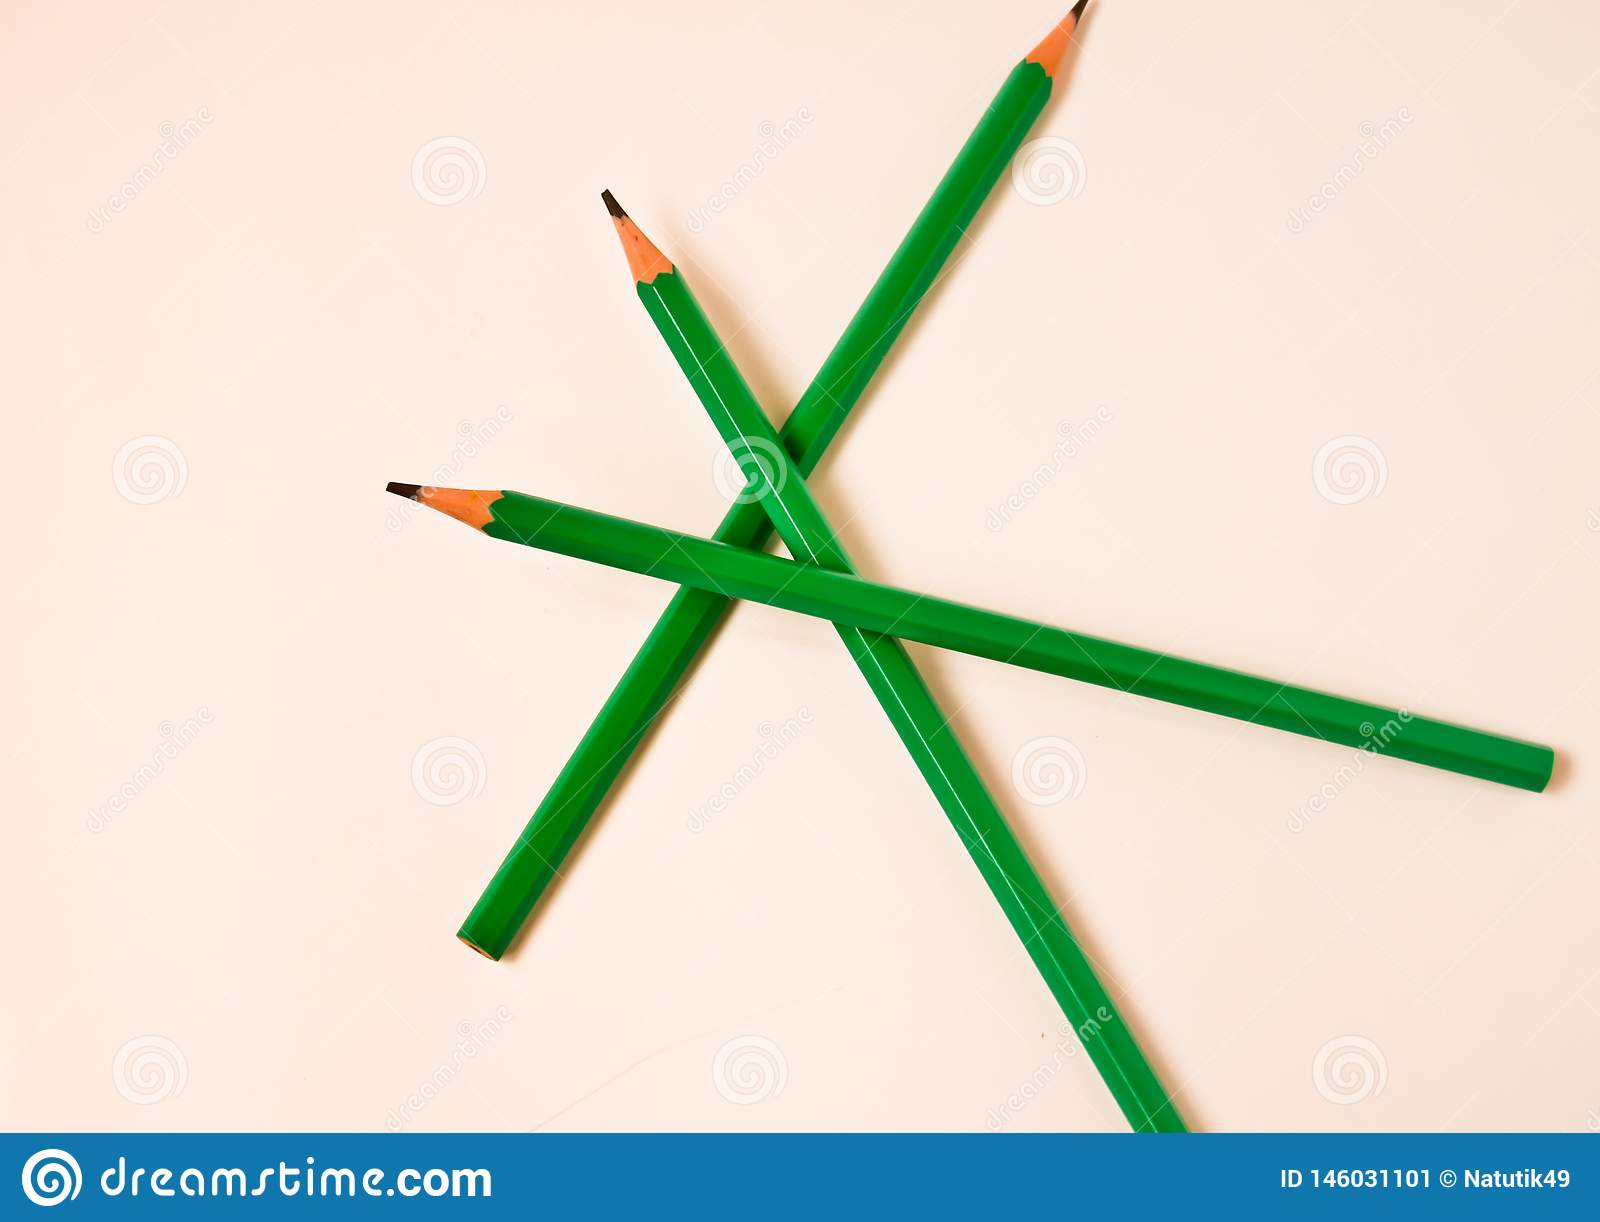 Color pencils pile  on white background with copy space for text. Happiness art education in childrens wallpaper